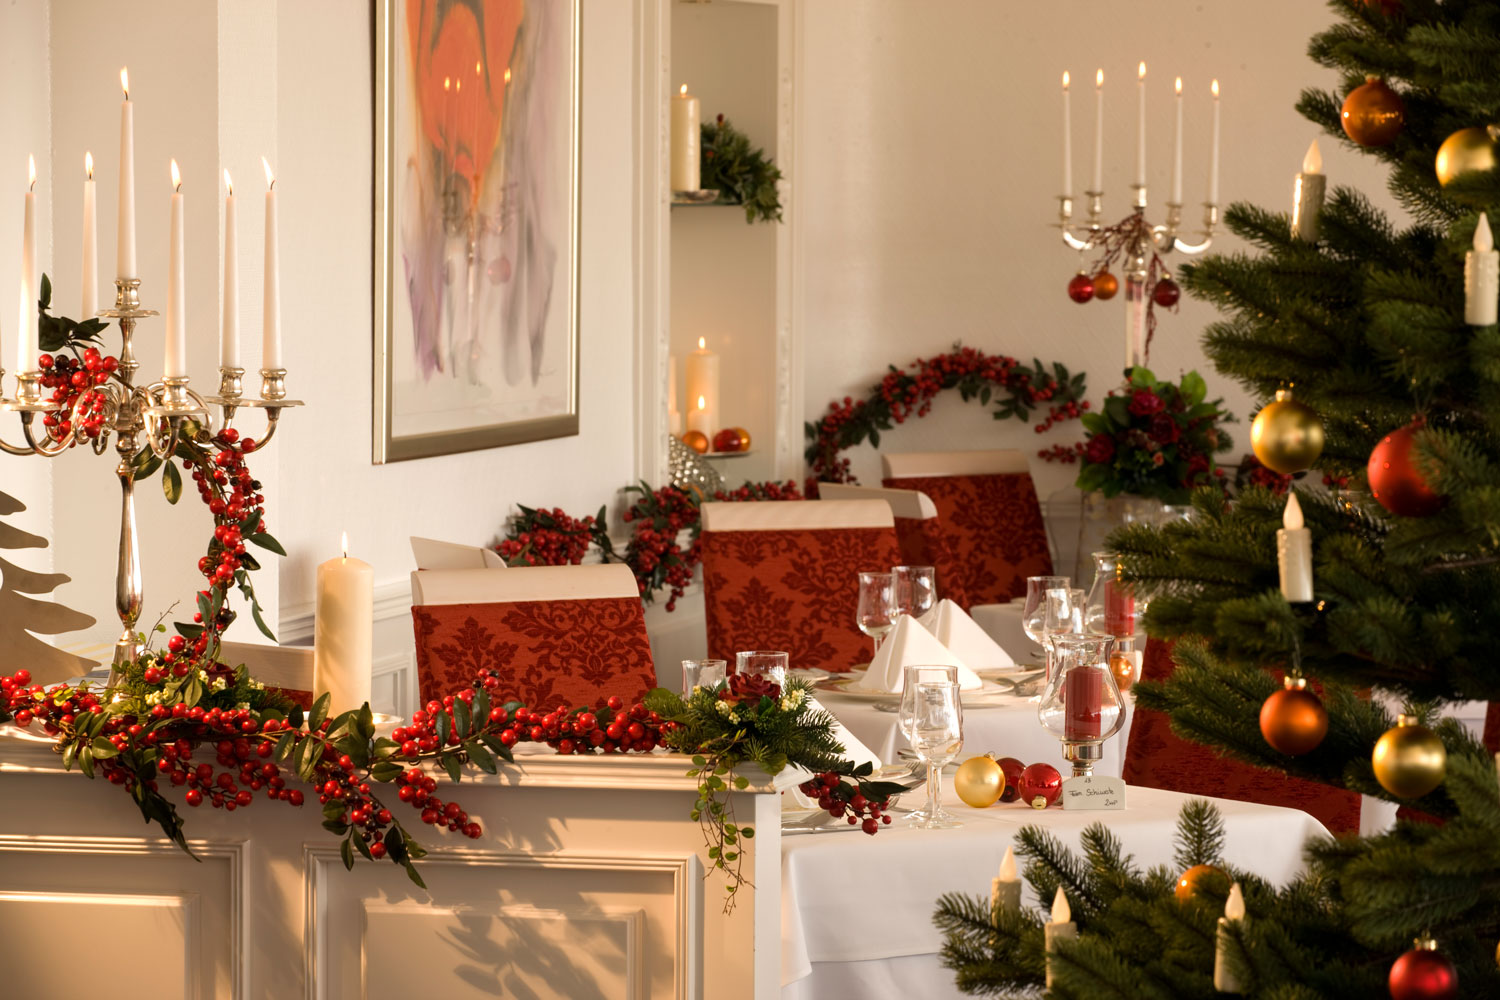 Weihnachten archive wellness hotels resorts blog for Weihnachtliche dekoration